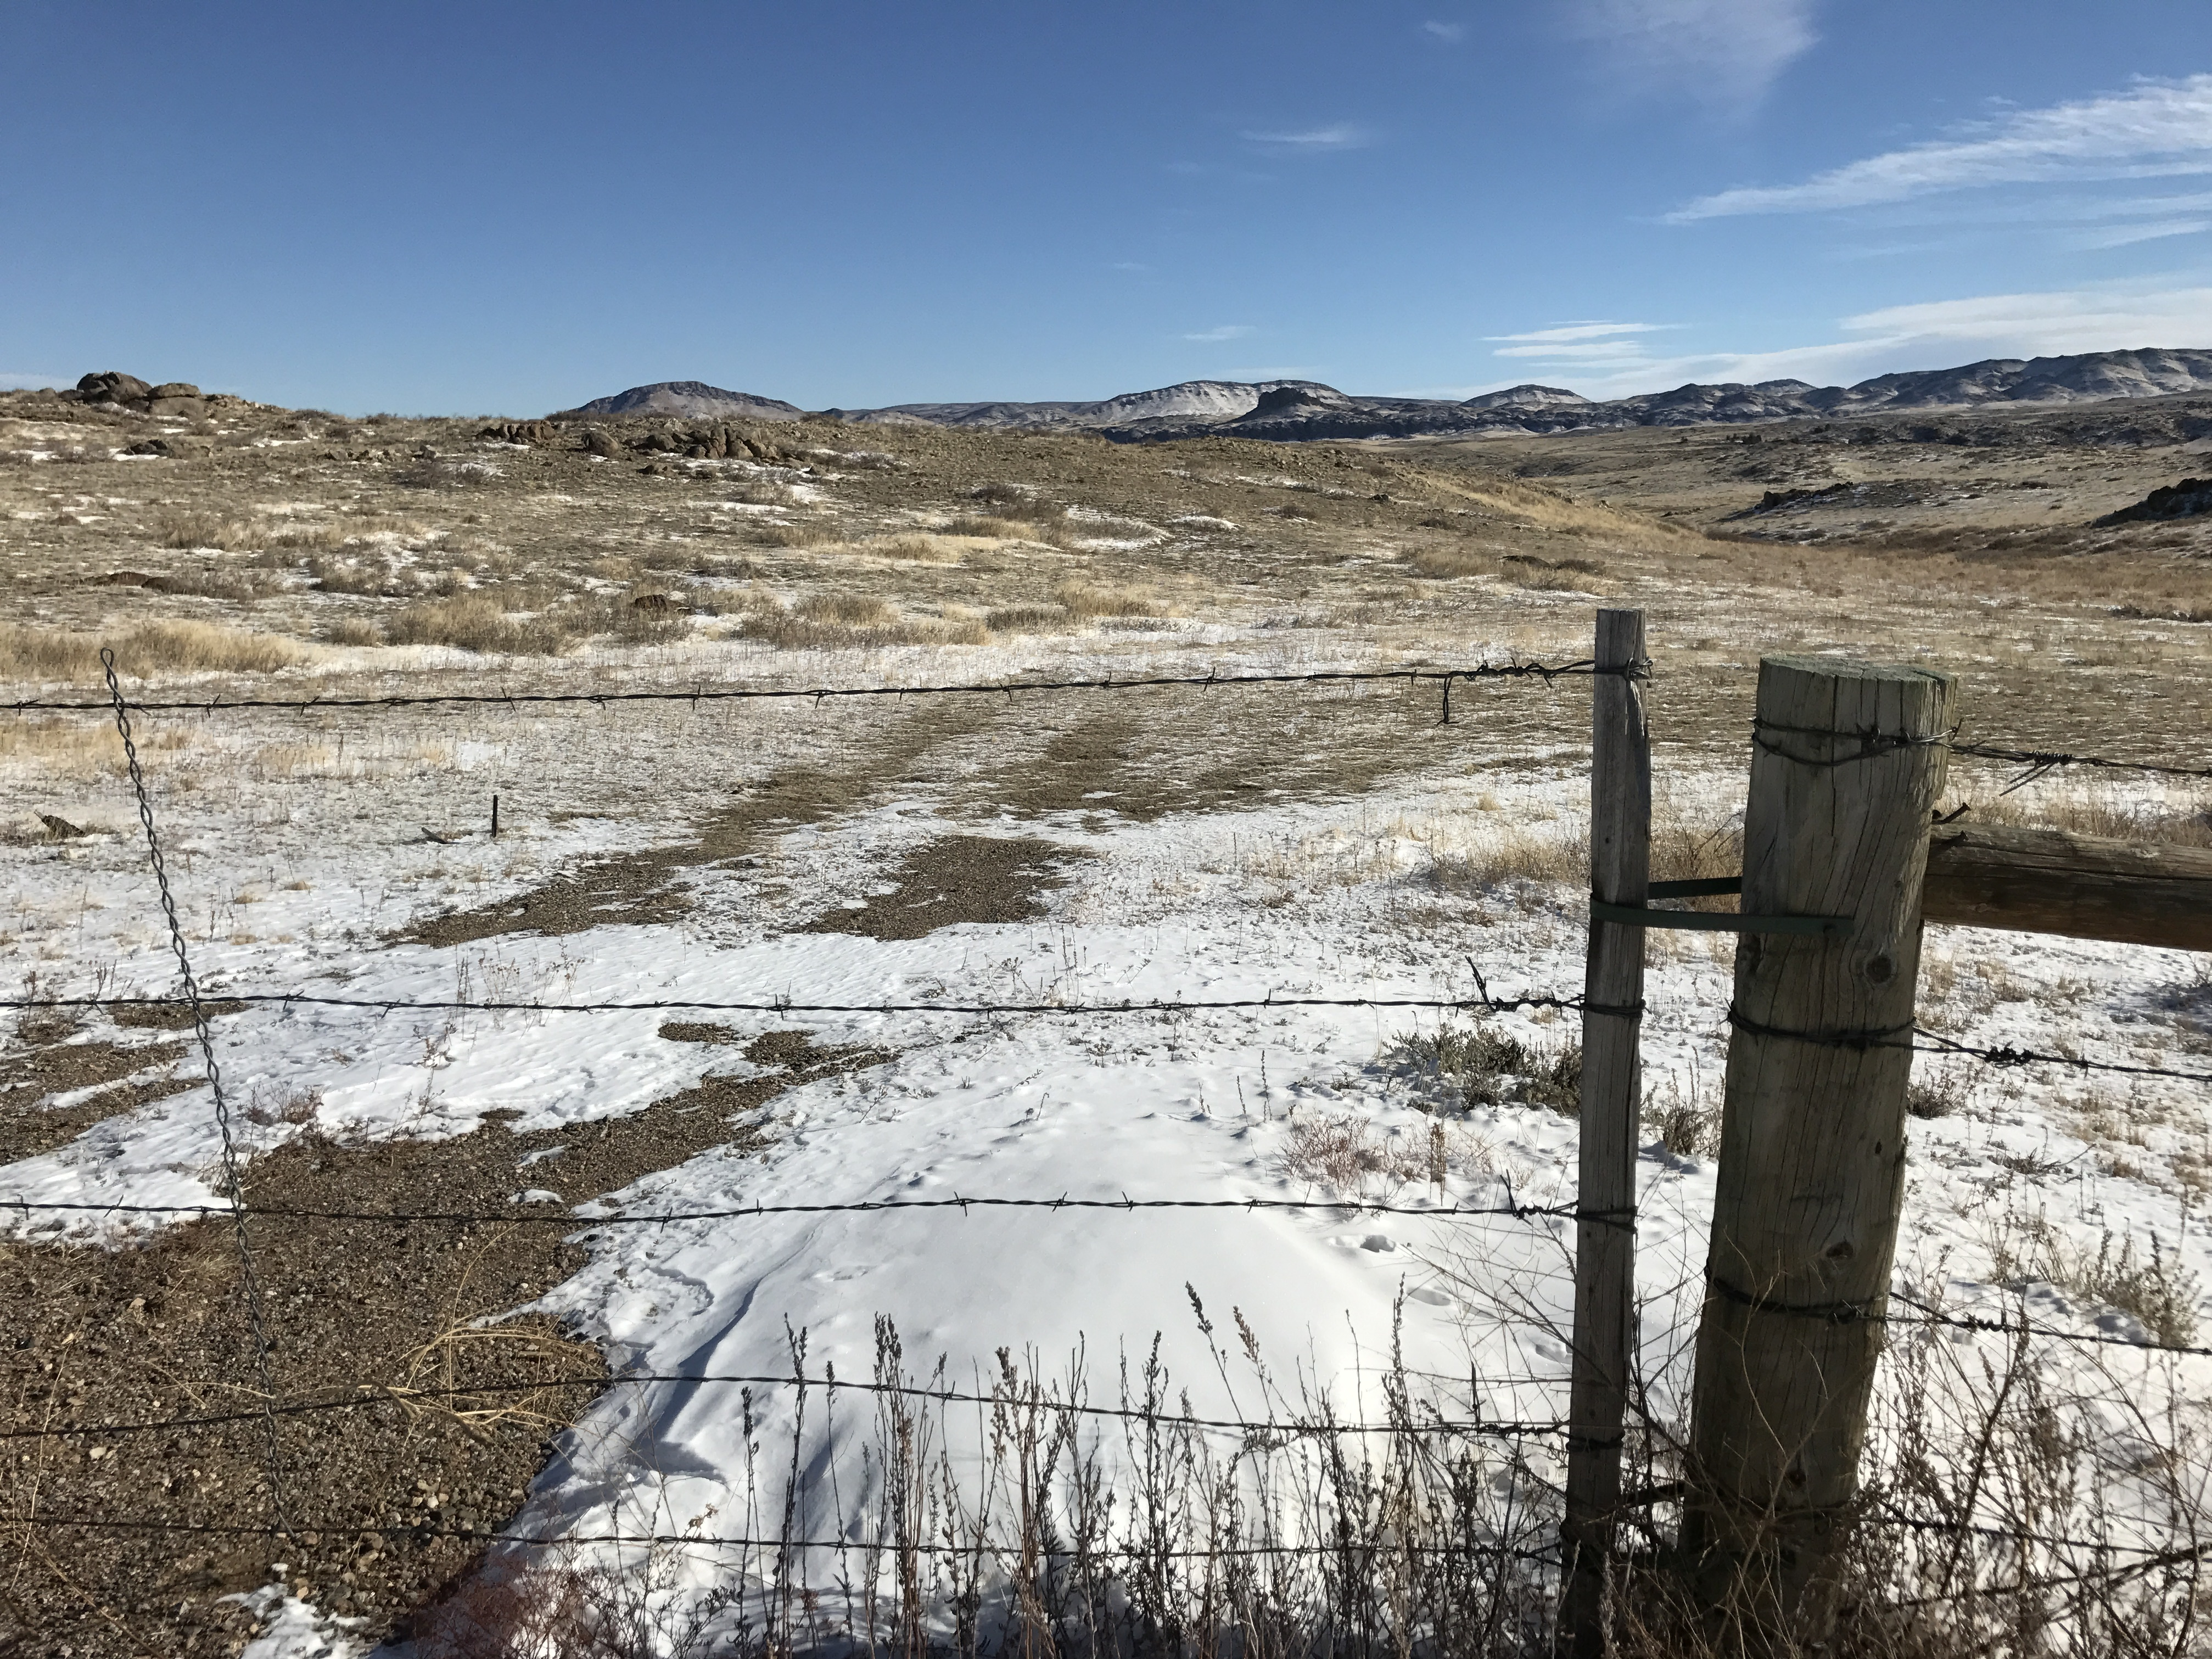 The Laramie range north of Laramie, Wyo., is a mix of private and public lands run by the U.S. Bureau of Land Management. About half of all the land in Wyoming is controlled by the federal government. Kirk Siegler/NPR.